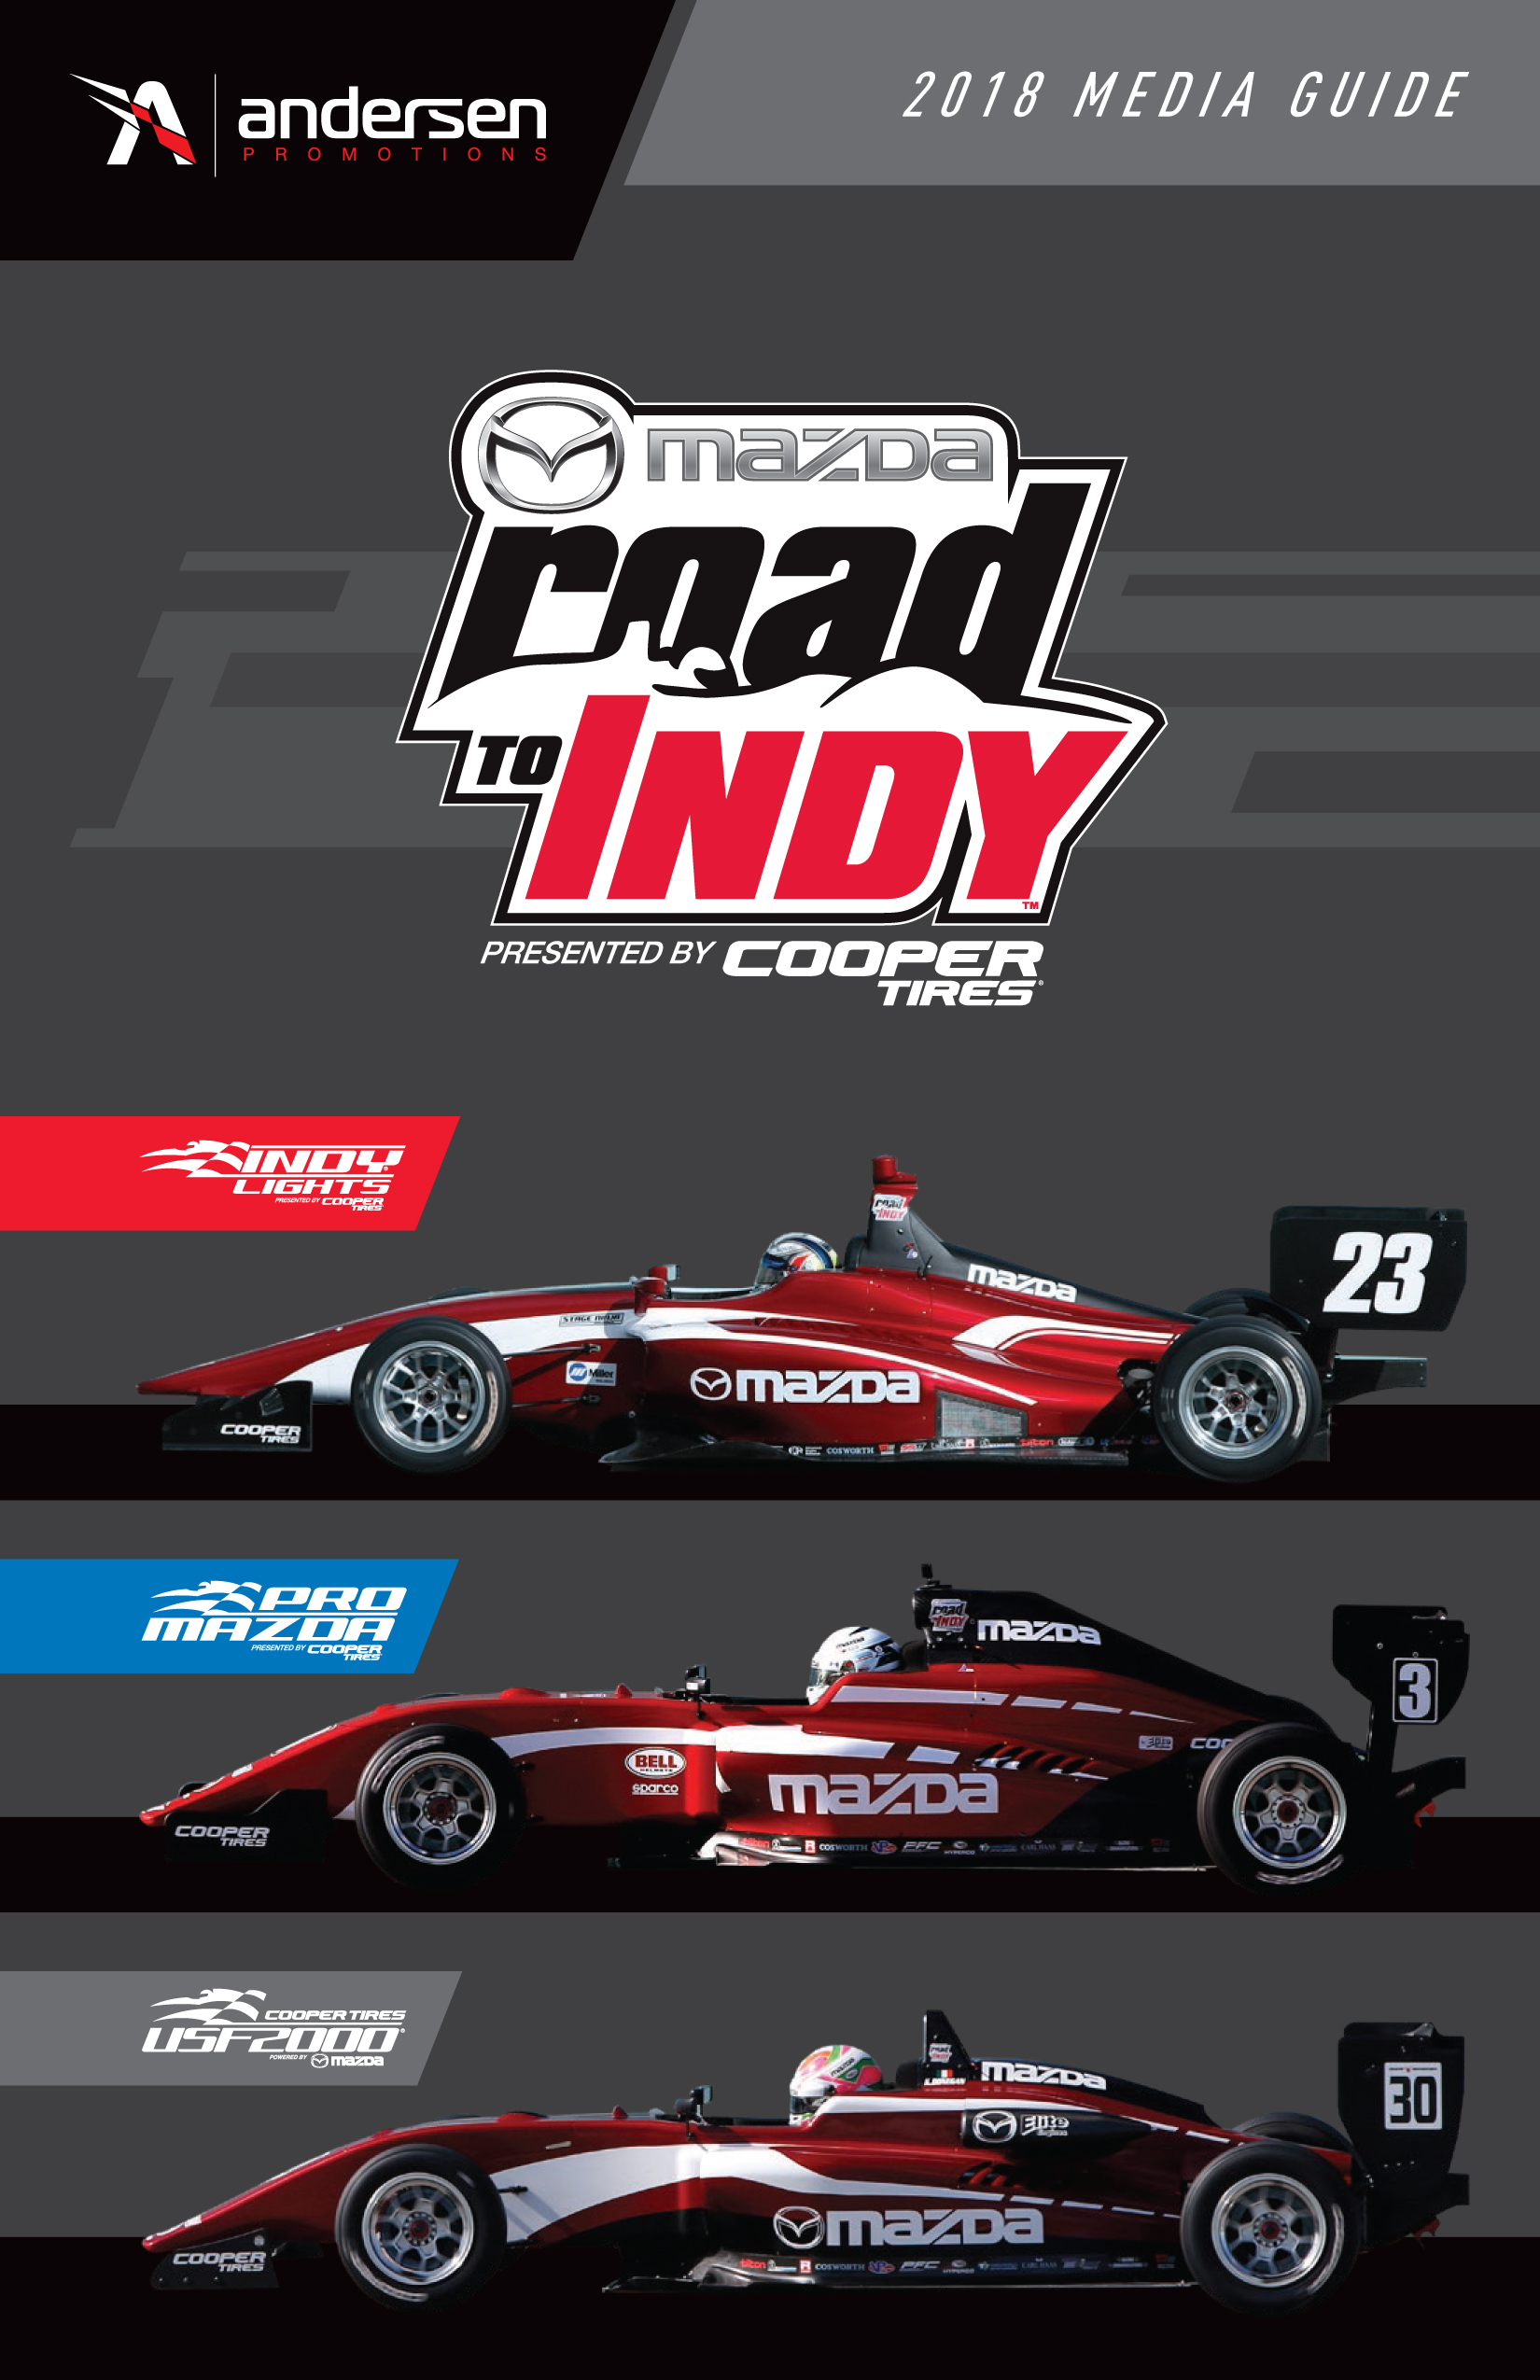 2018_MRTI_PRESS_KIT_ALL_APRIL5_SINGLEPAGE_SMALLER-1 copy